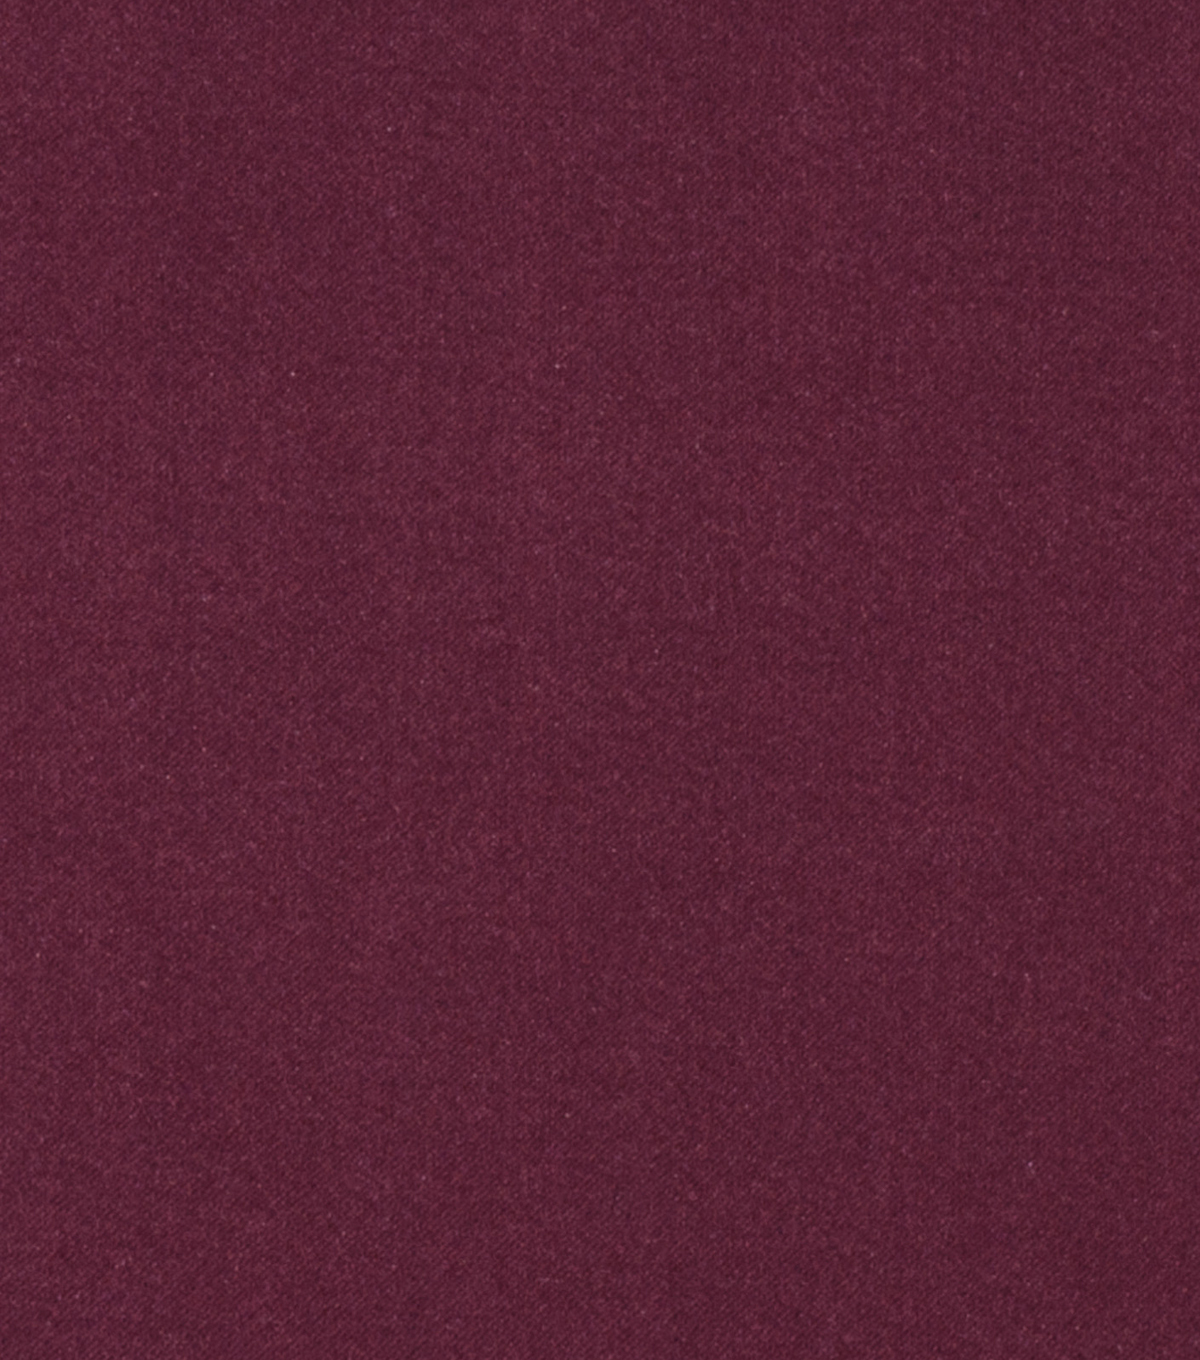 Home Decor 8\u0022x8\u0022 Fabric Swatch-Signature Series Couture Satin Wine